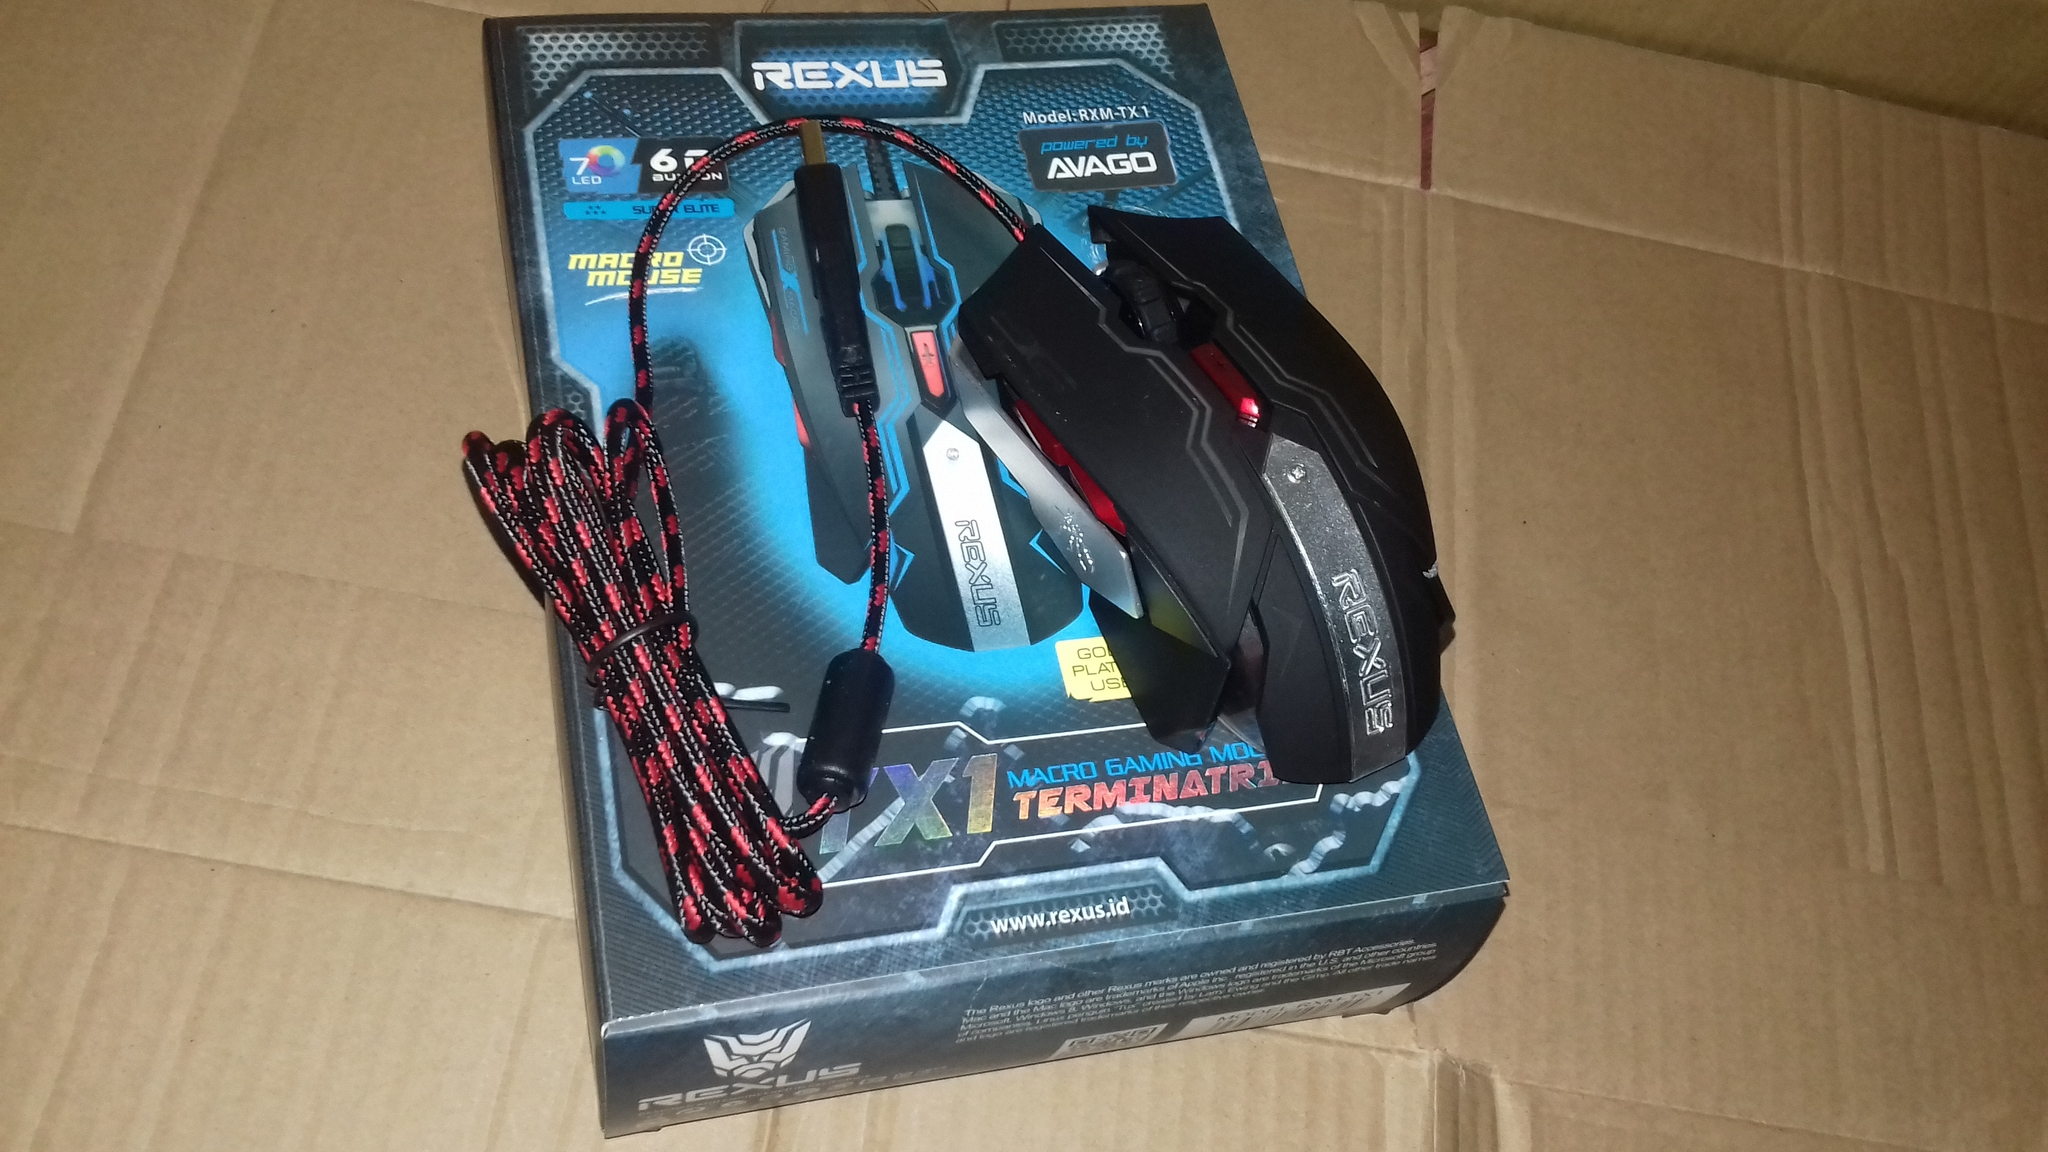 Permalink to Rexus Keyboard Gaming Rexus Mechanical Tkl Mx5 Legionare